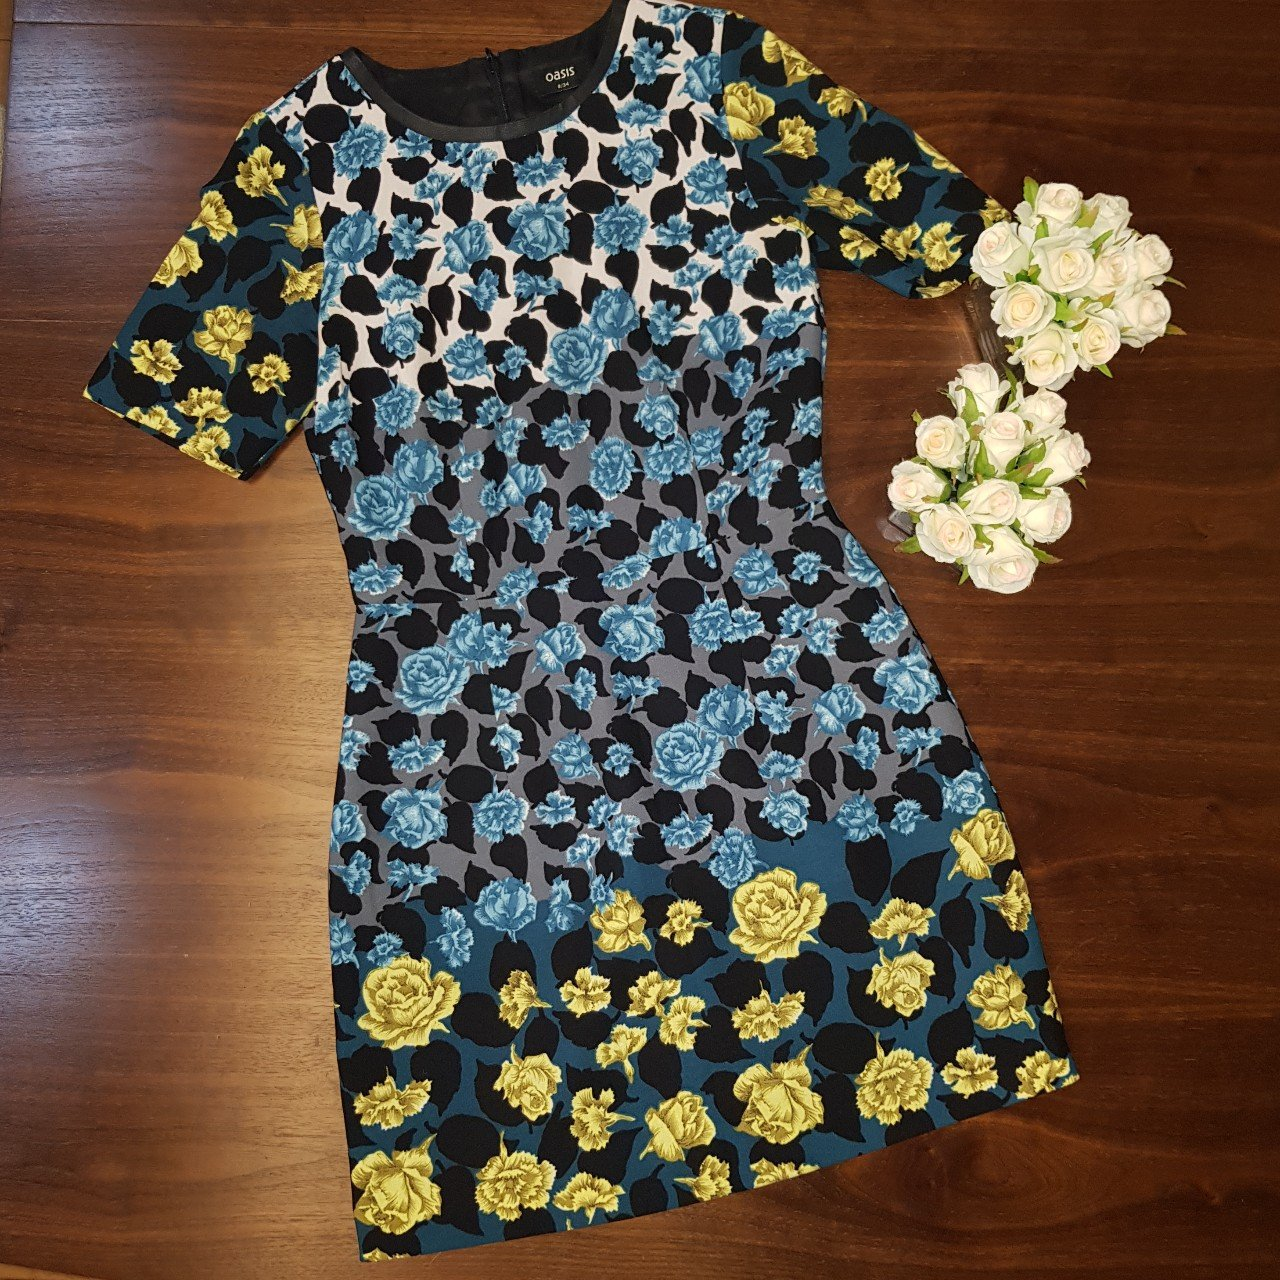 eea8a44a219 Oasis floral dress 🌼🌼🌻🌺 Codnition as